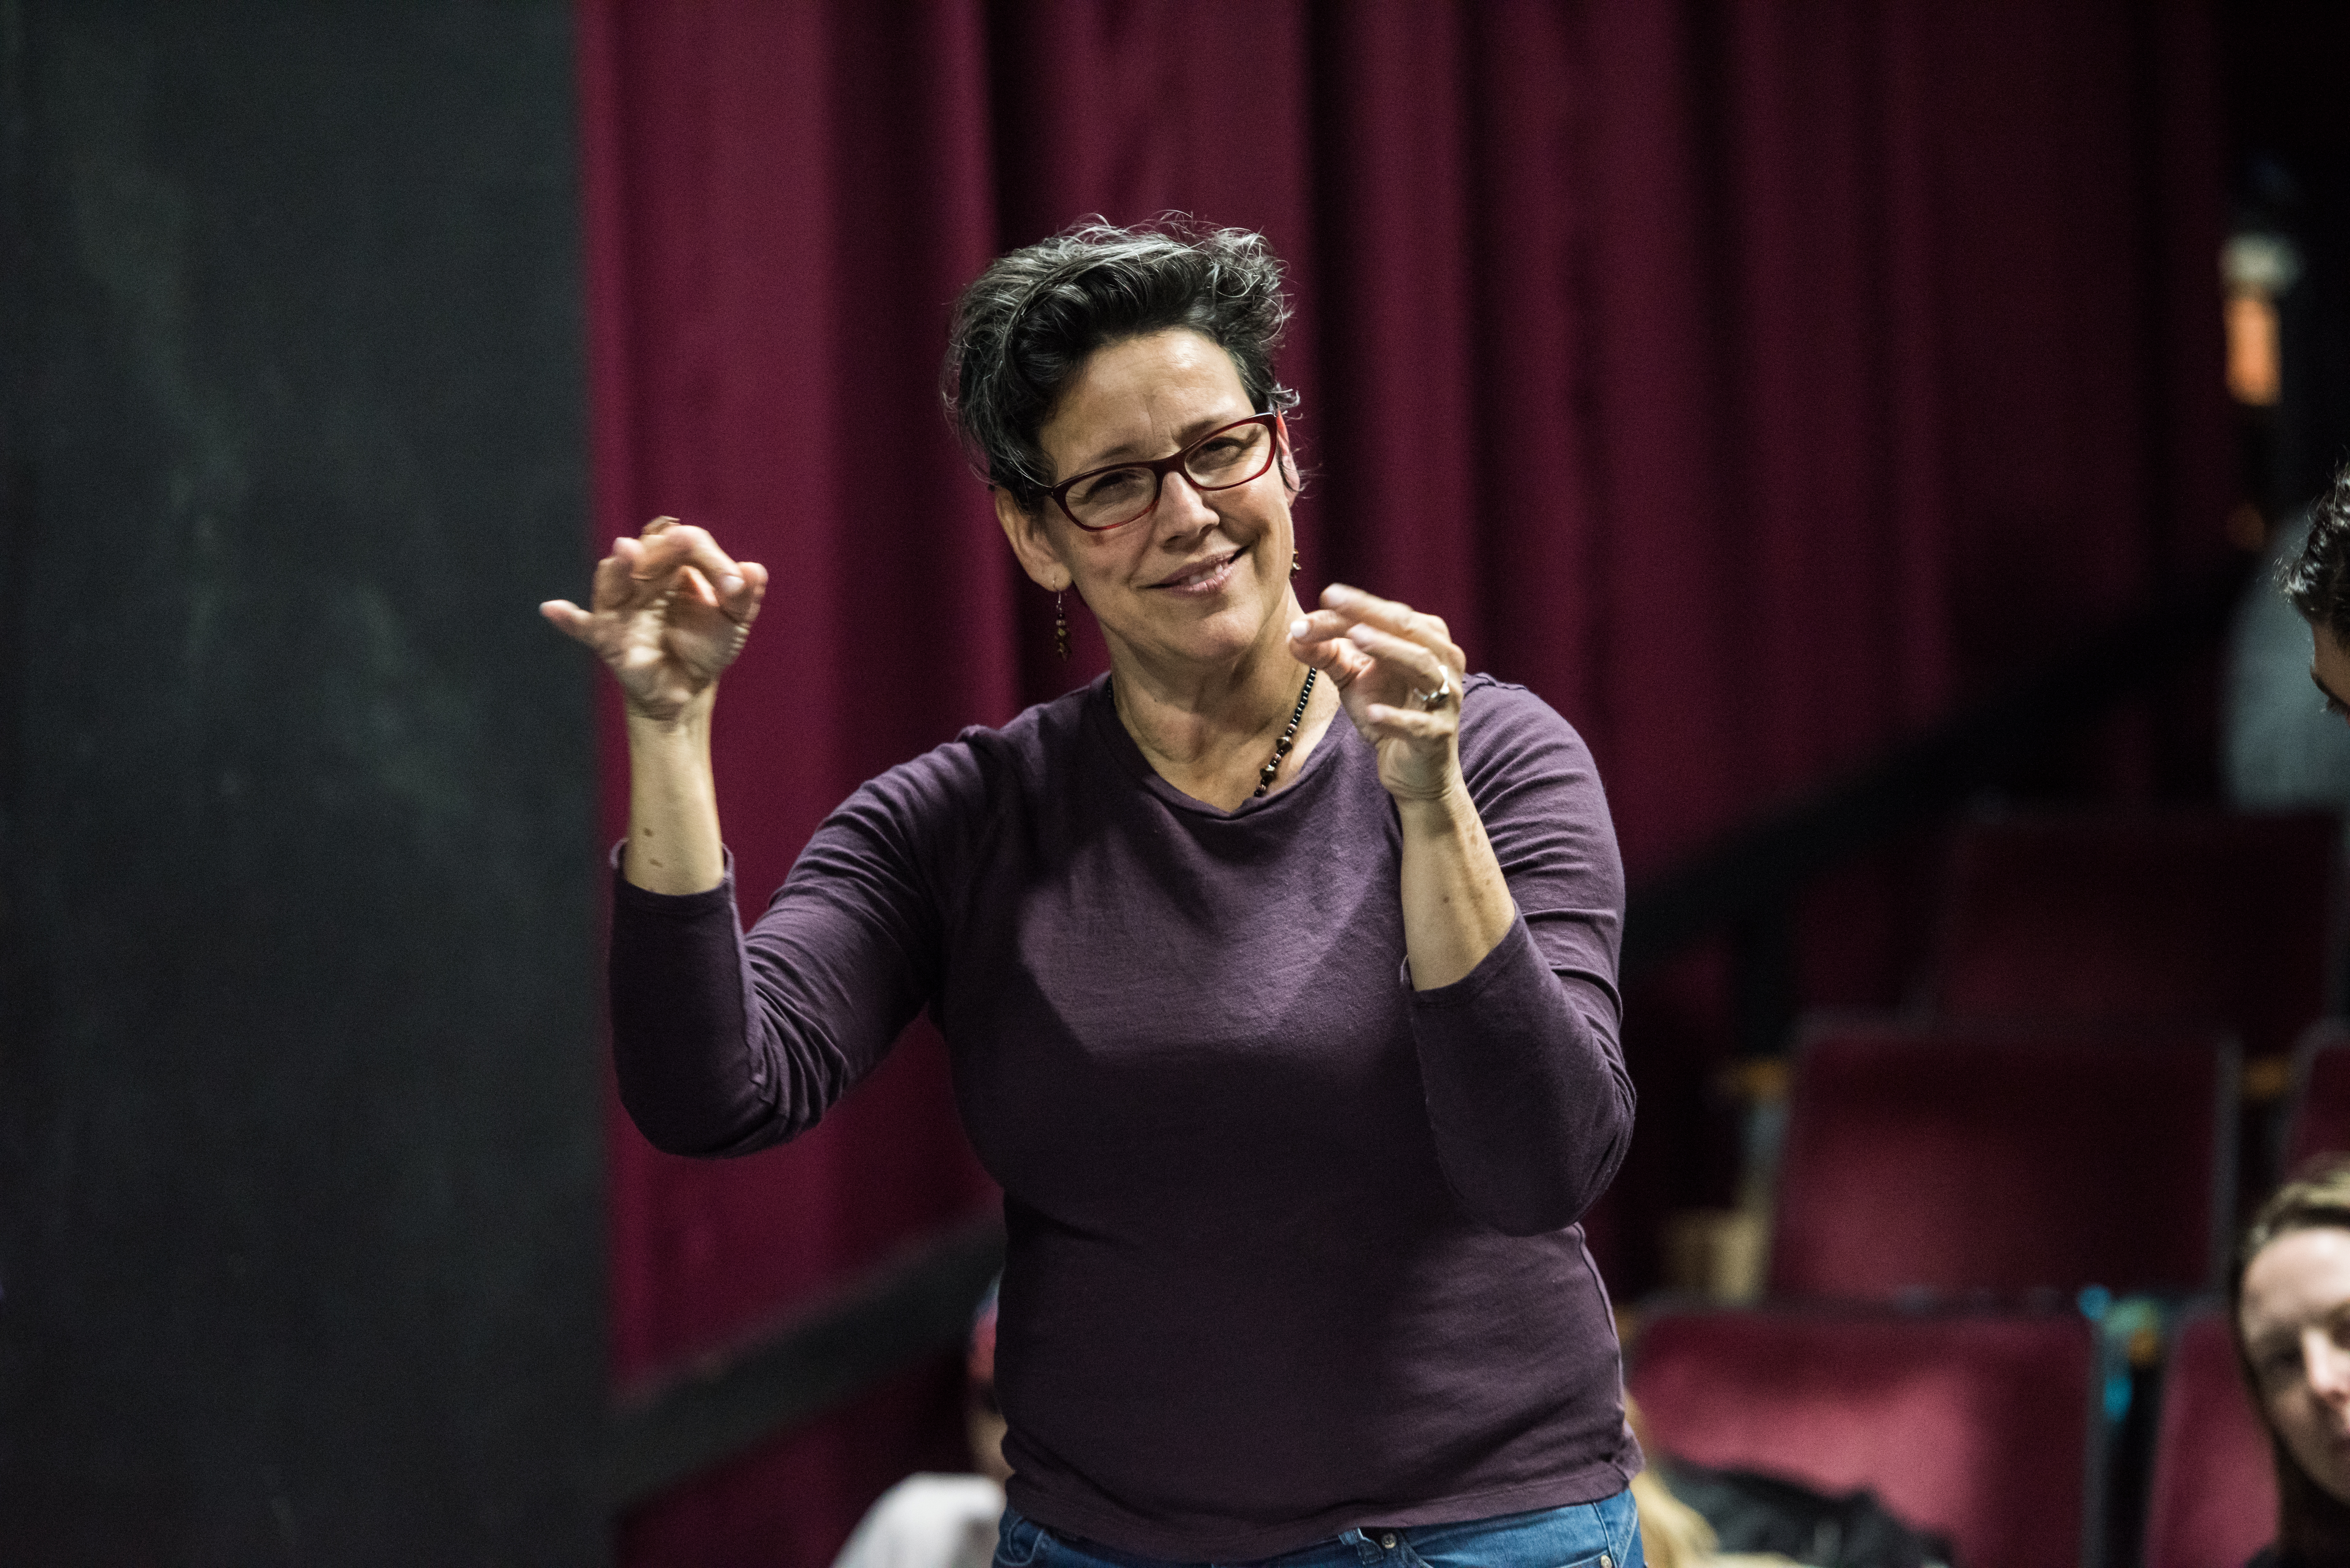 Terrylene Sacchetti, Director of Artistic Sign Language